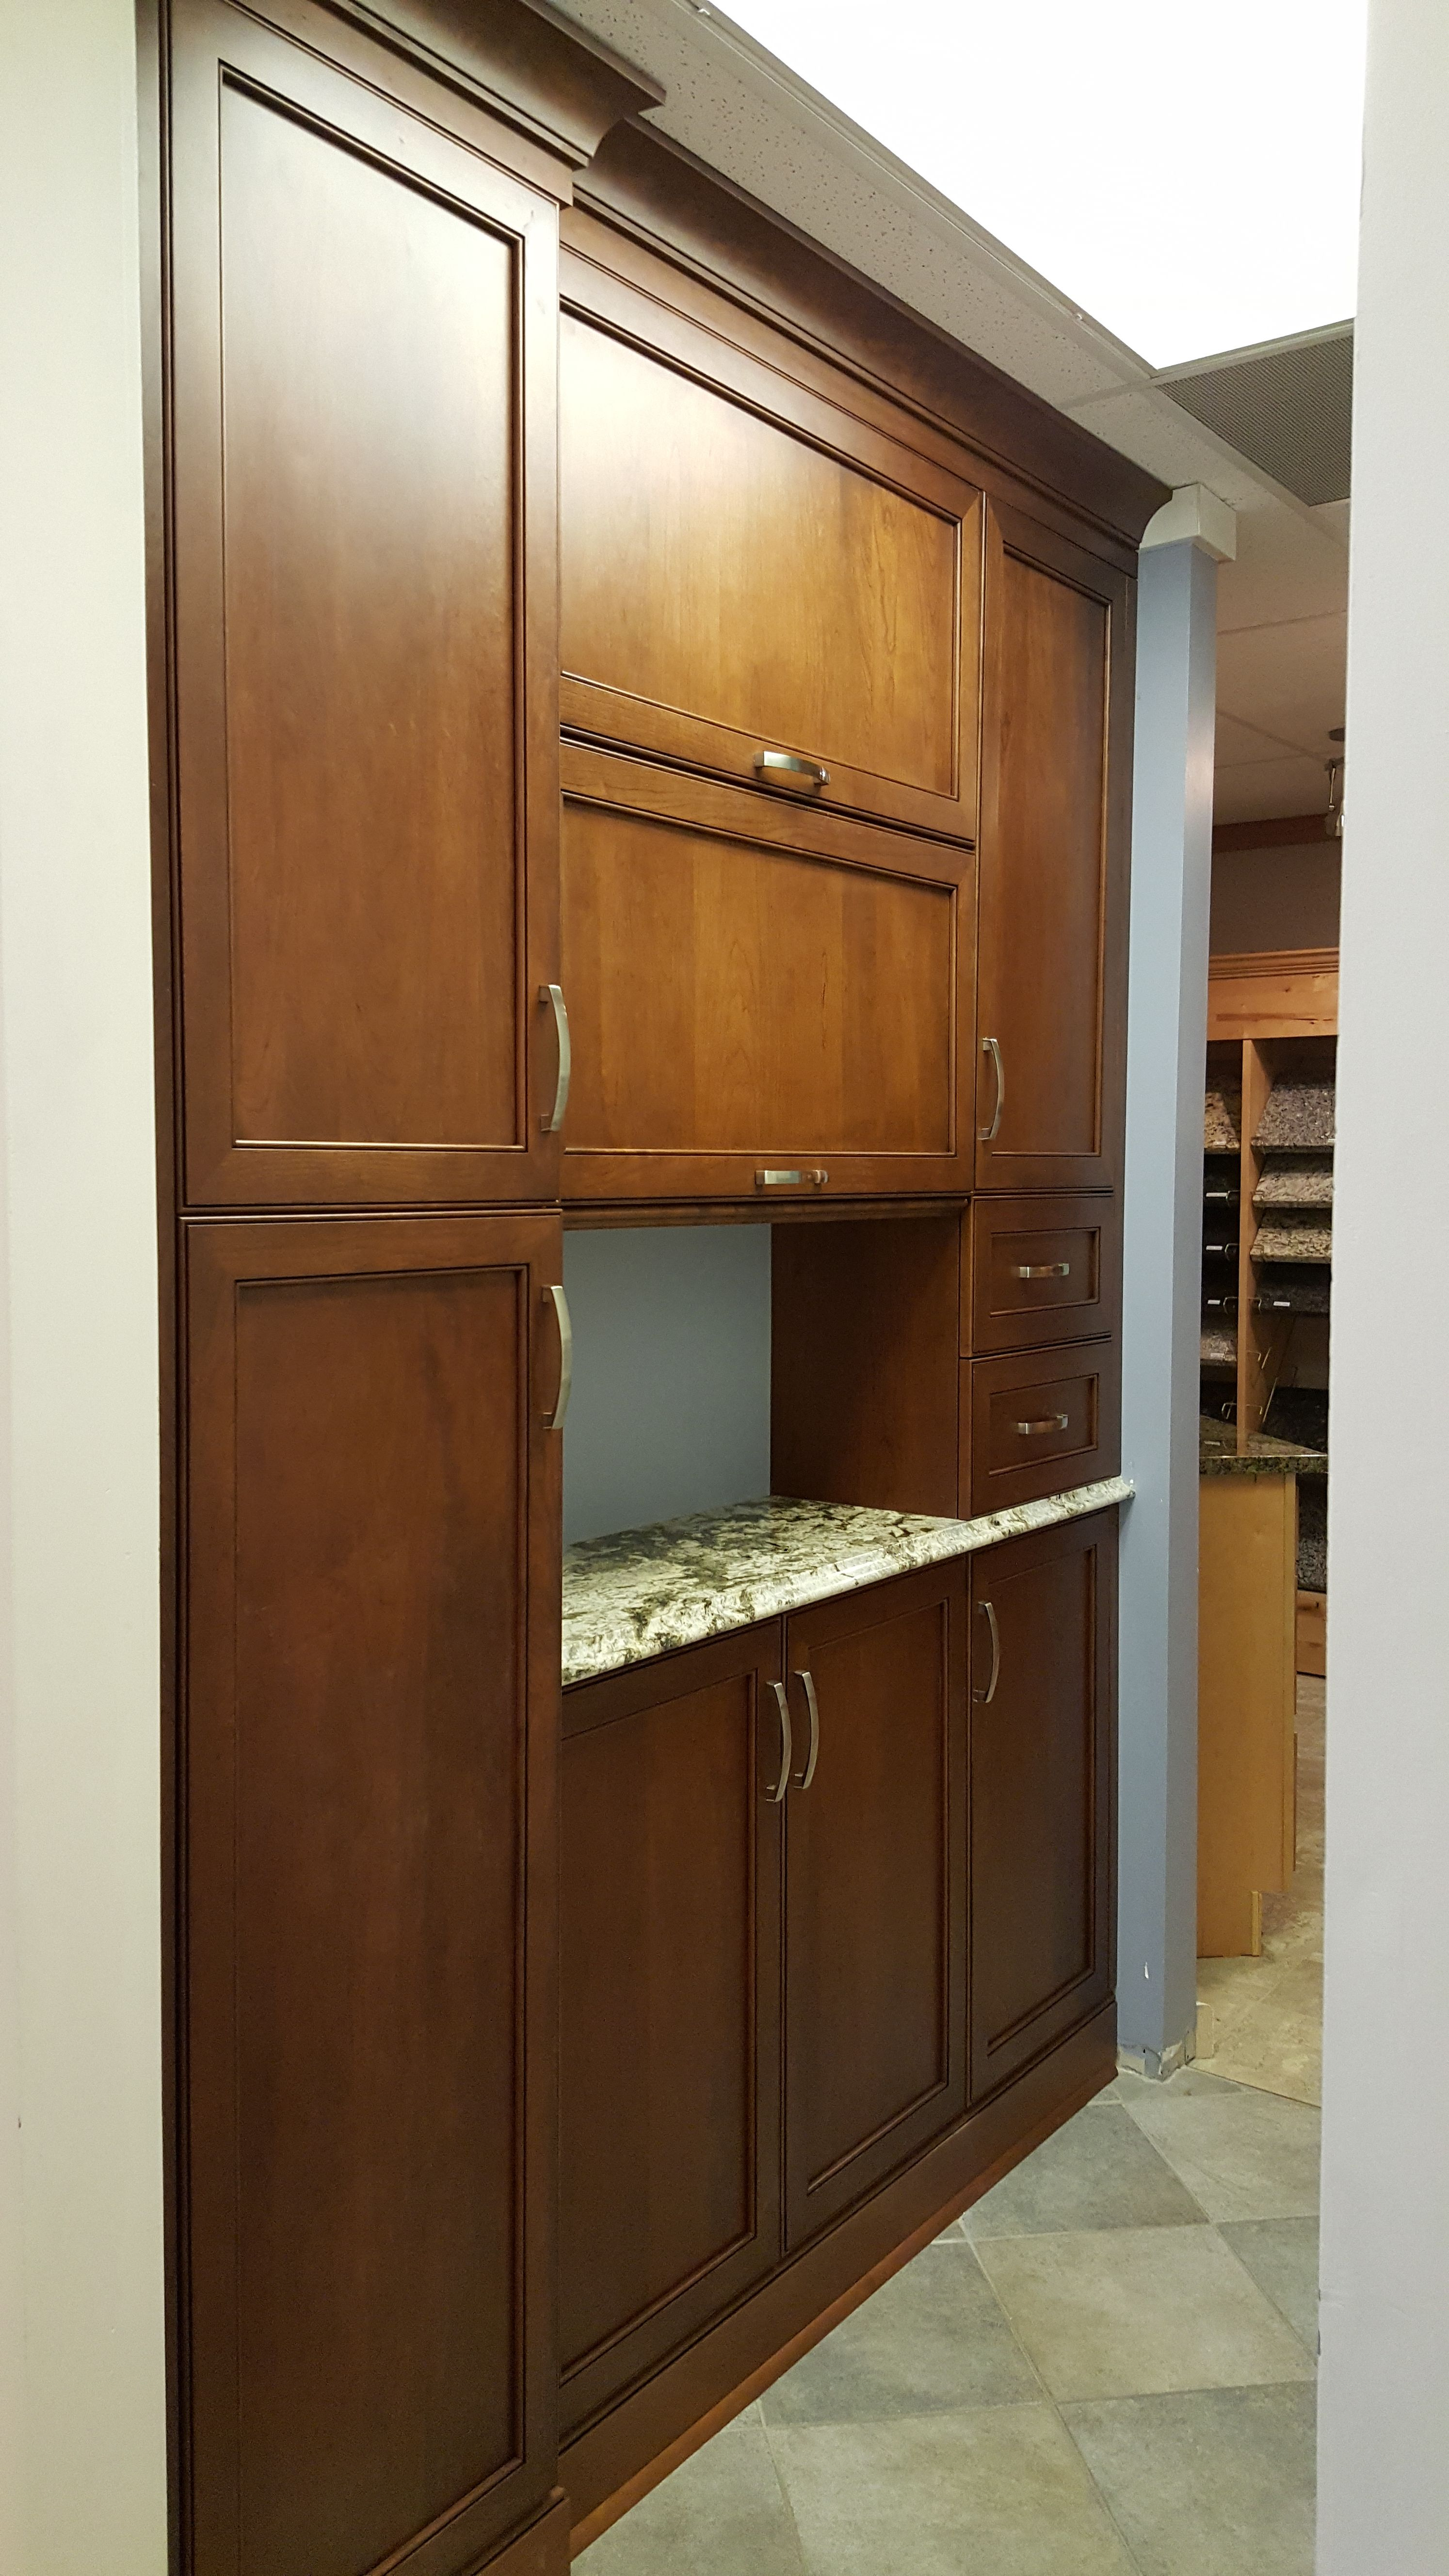 Kitchen Showrooms, Entertainment Center, Maids, Virginia, Kitchens, House  Cleaners, Maid, Kitchen, Kitchen Cabinets